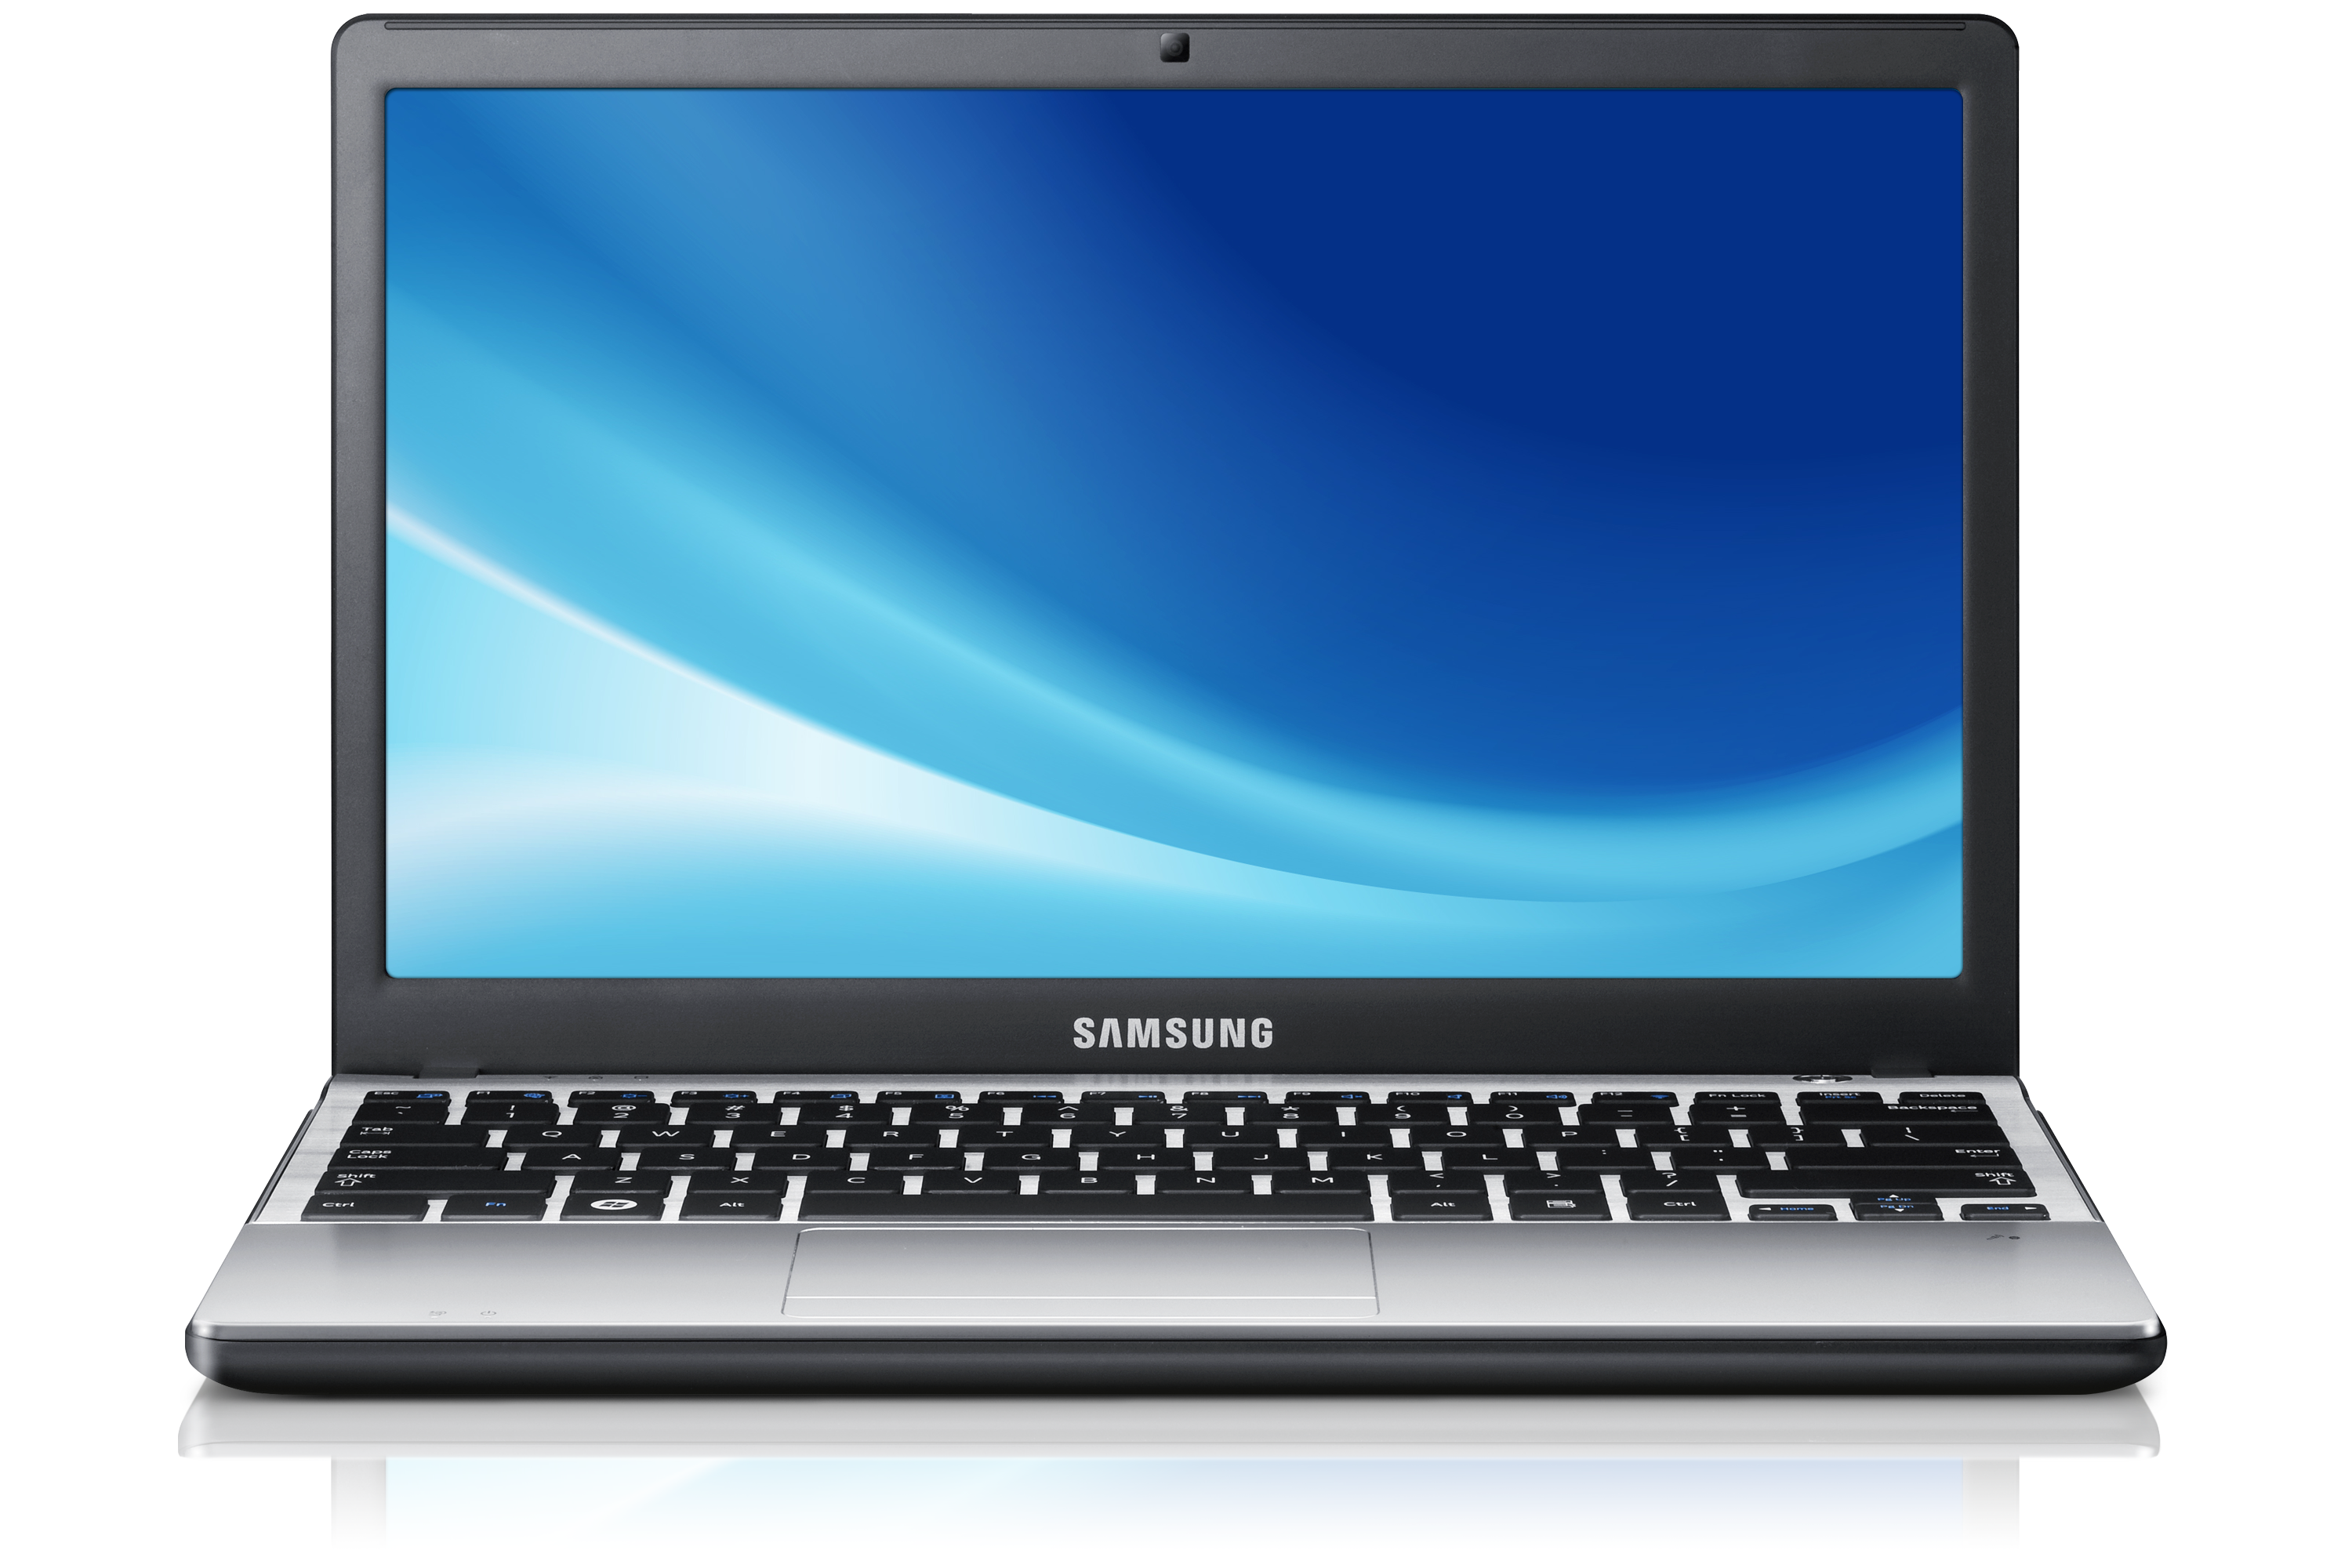 Samsung NP350U2A Notebook Easy File Share Driver for Windows Download